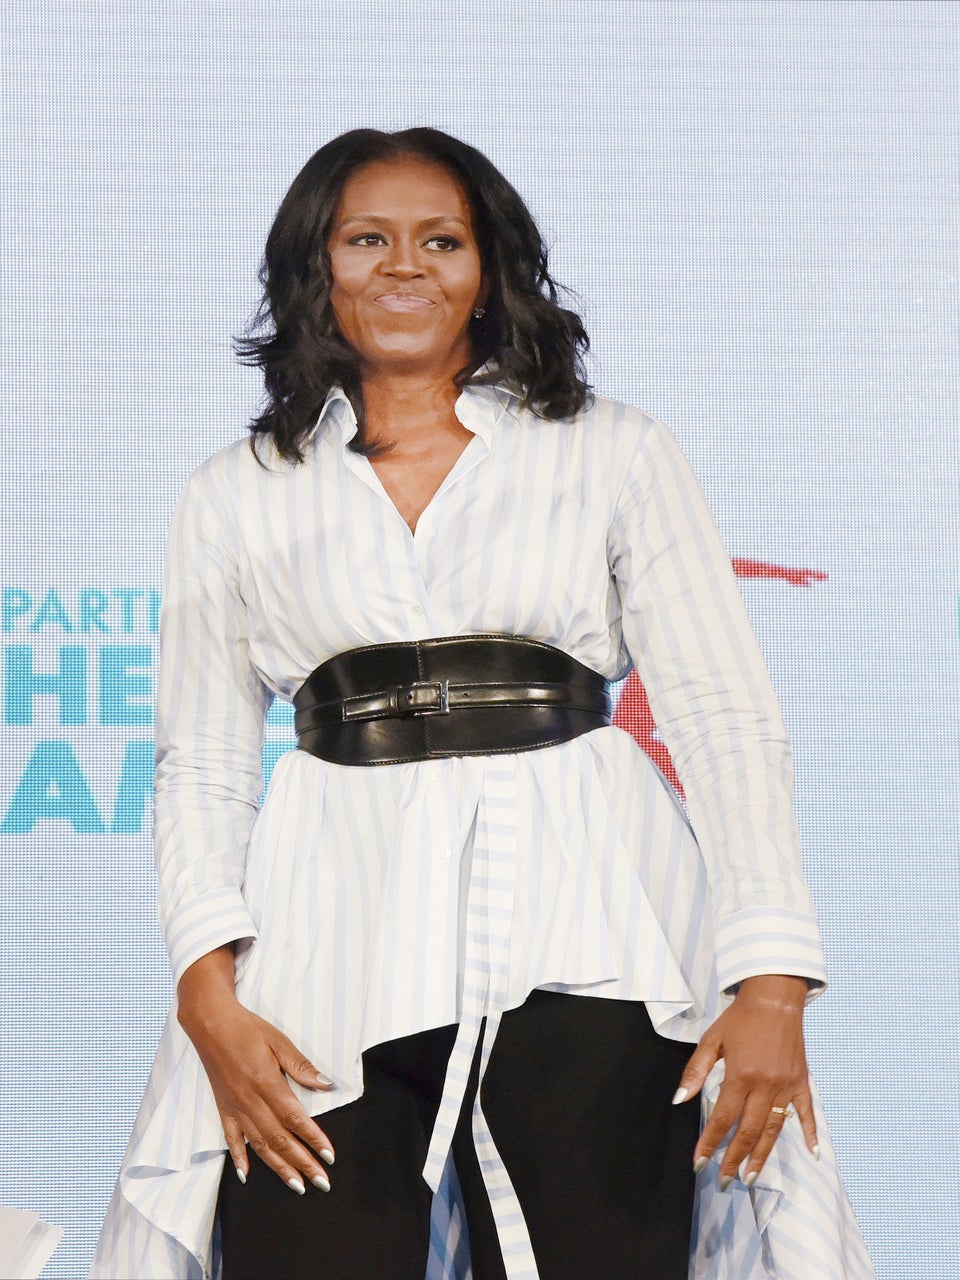 Michelle Obama Steps Out in a Killer Corset Belt and We're So Here for It